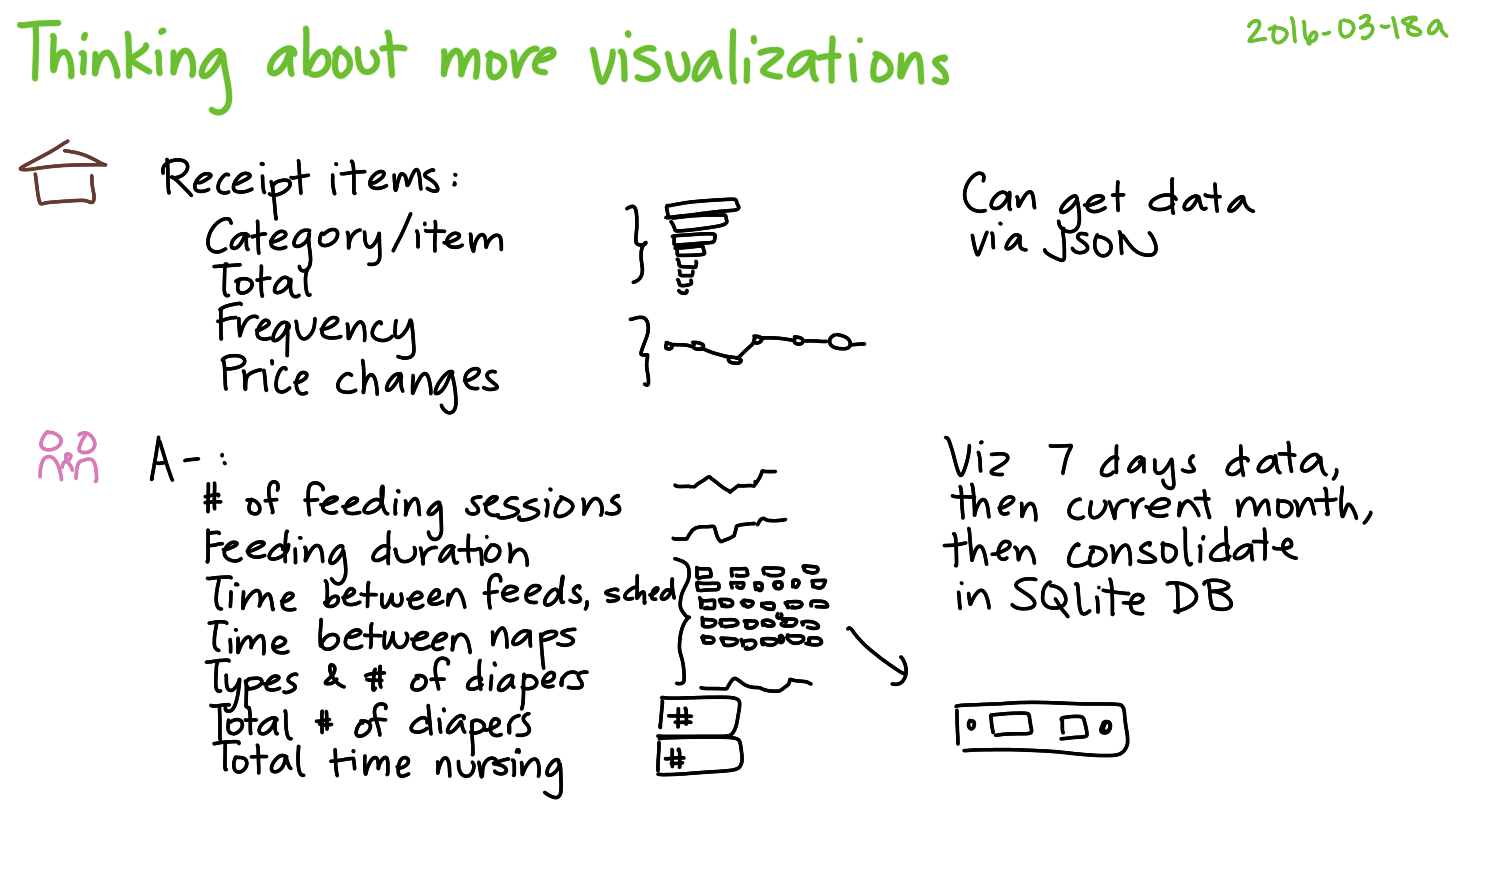 2016-03-18a Thinking about more visualizations -- index card #coding #viz #visualization.png